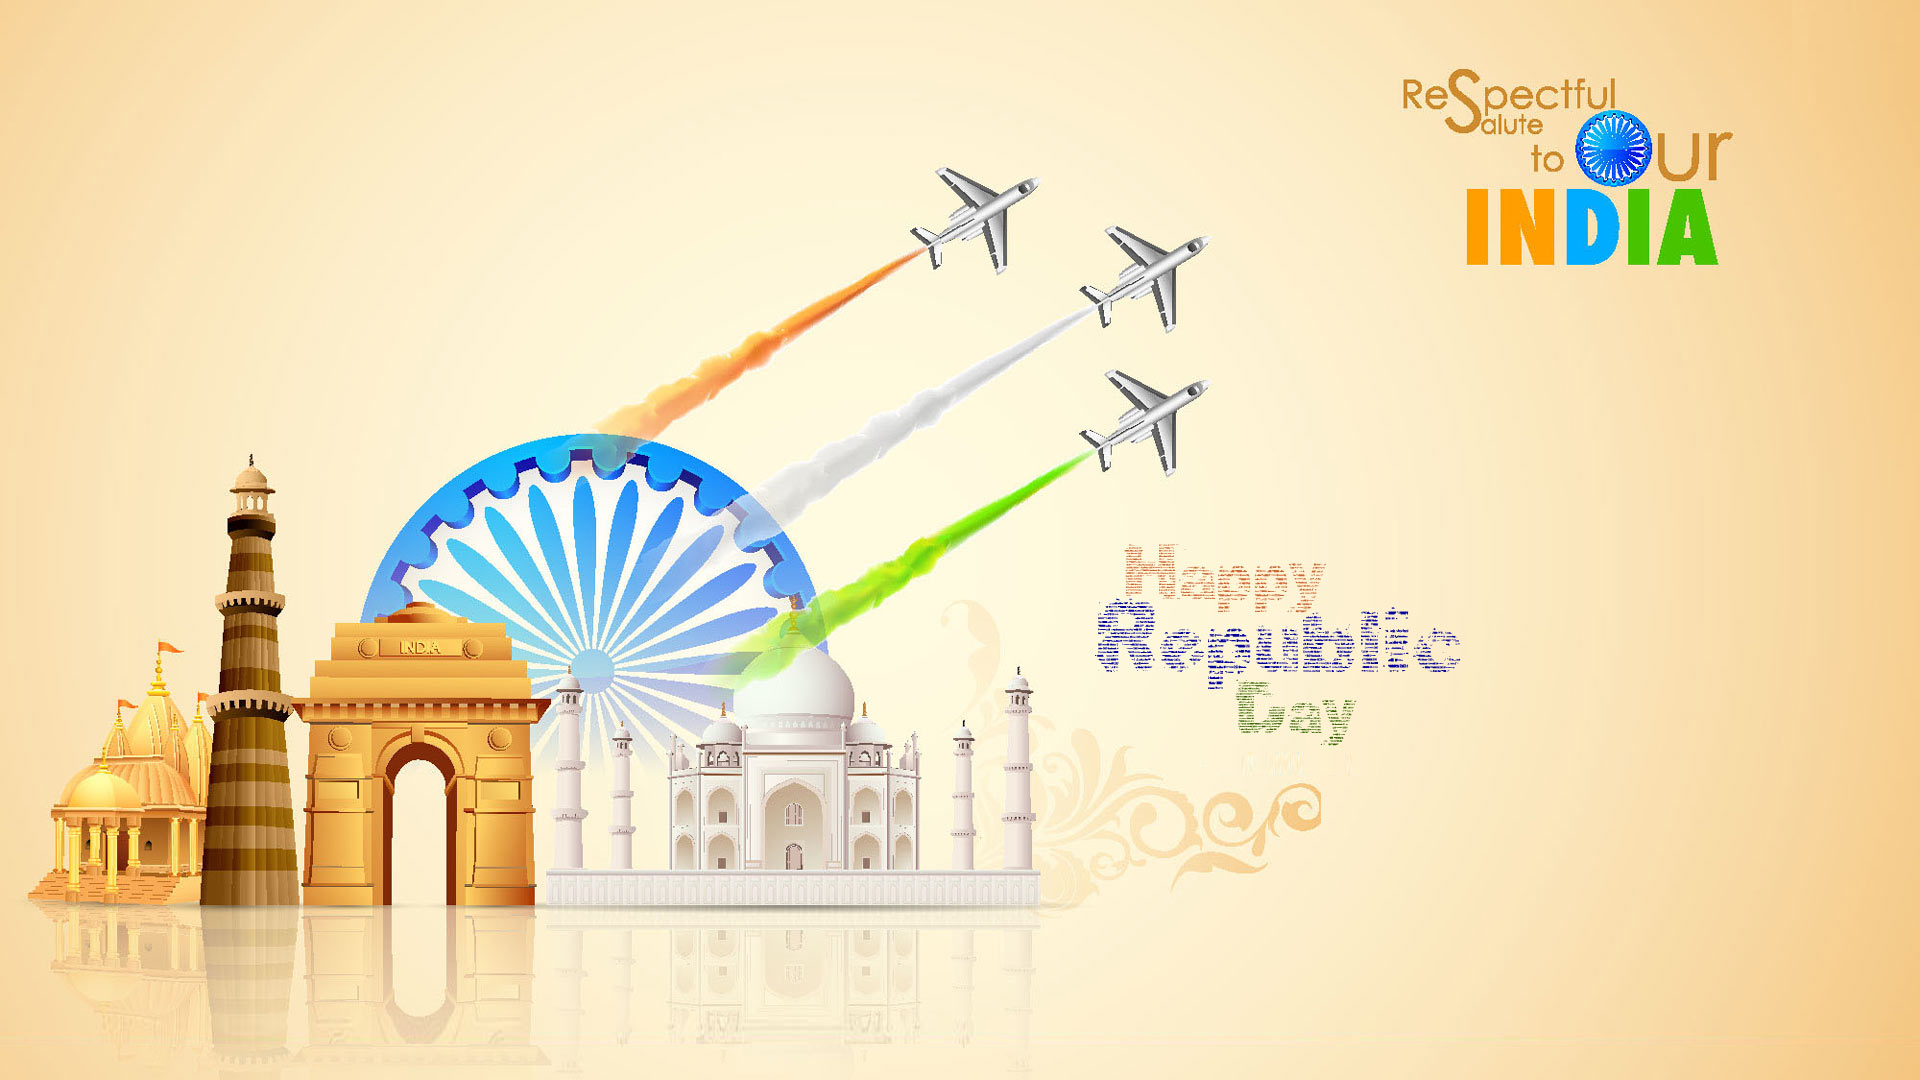 Happy Republic Day 2018 Greetings Speeches Images Wallpapers